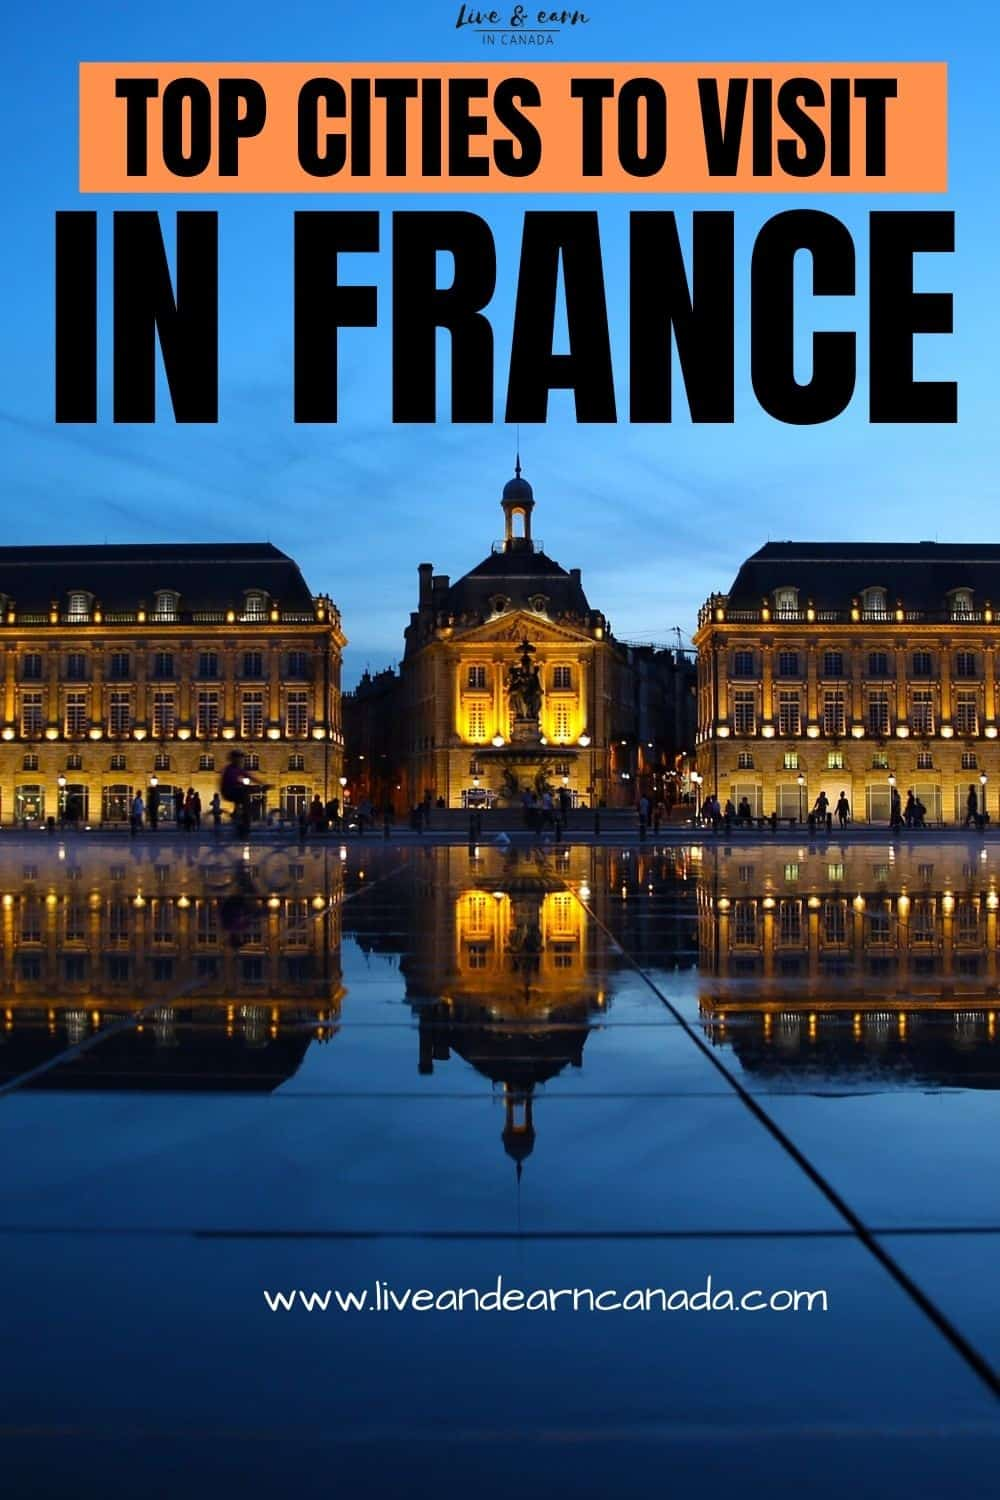 The best places to visit in France. We are sharing some of the most beautiful places to visit in France #visitfrance #triptoFrance Travel to some of the most beautiful places in France today!